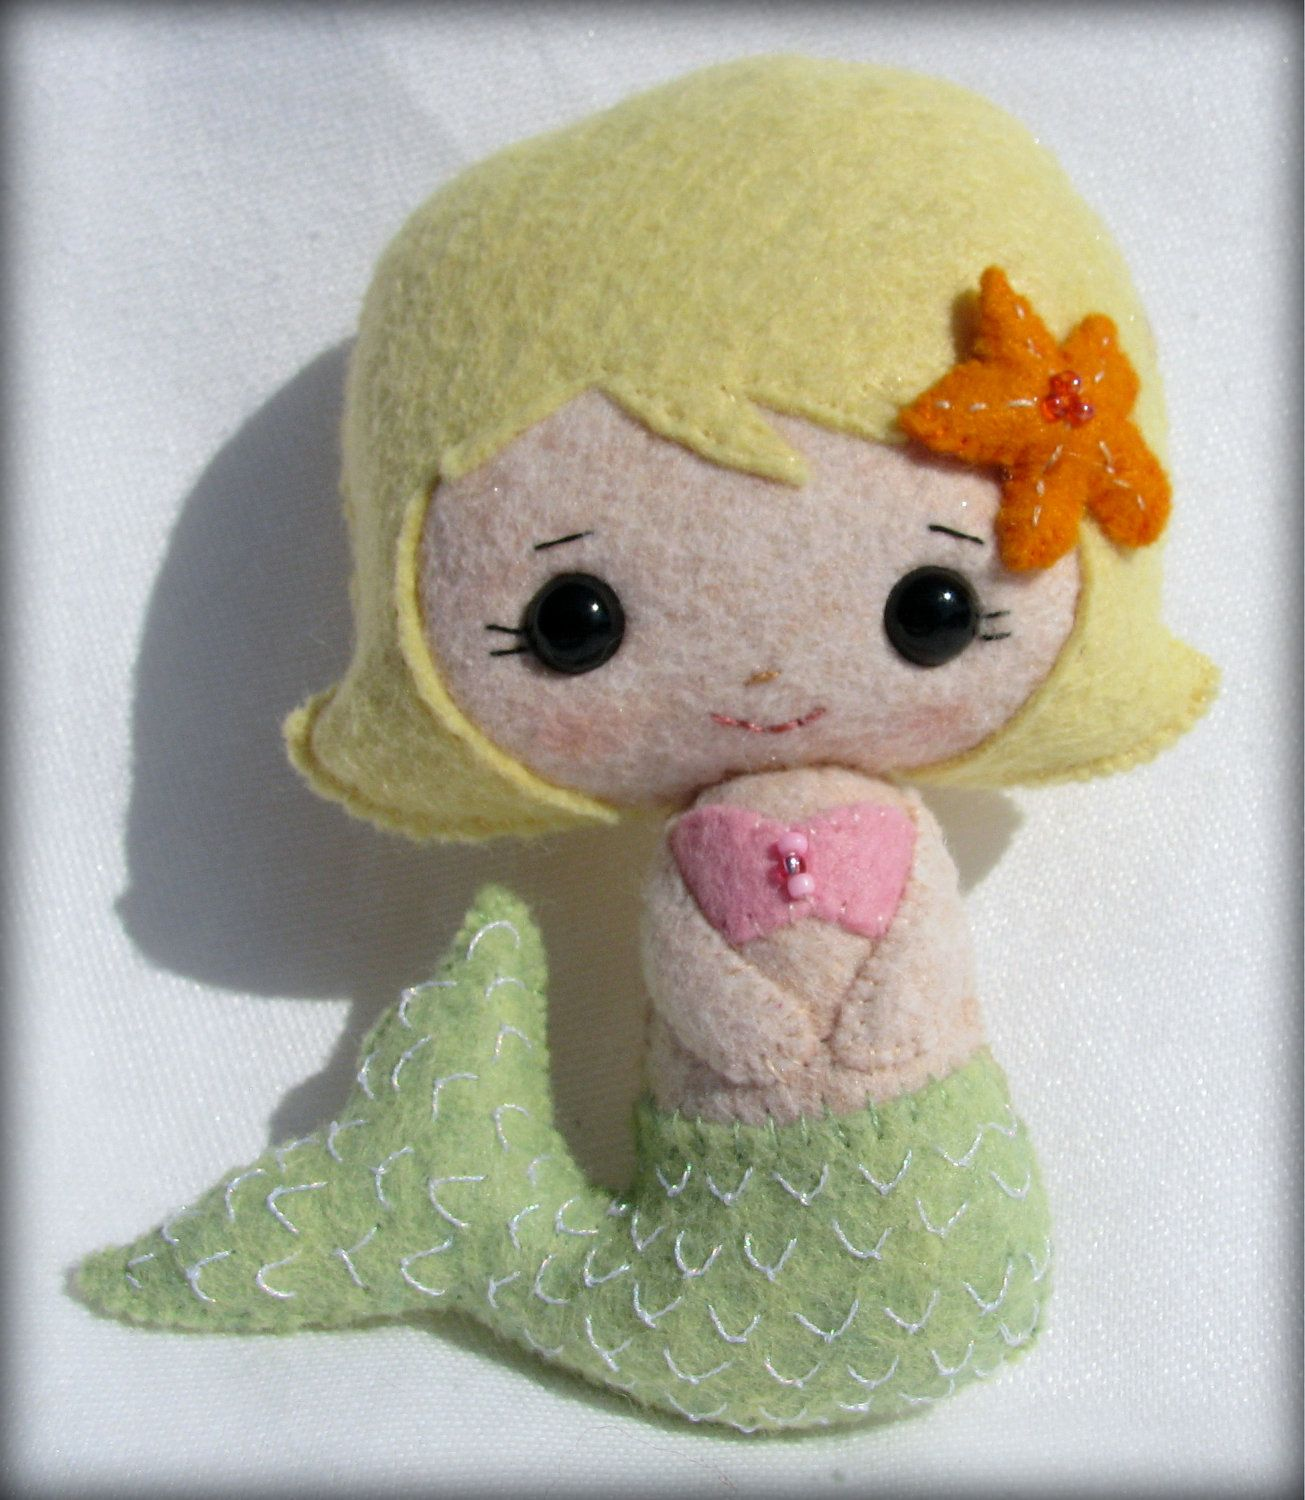 Pretty little Mermaid doll - hand stitched with wool blend felt - collectable doll